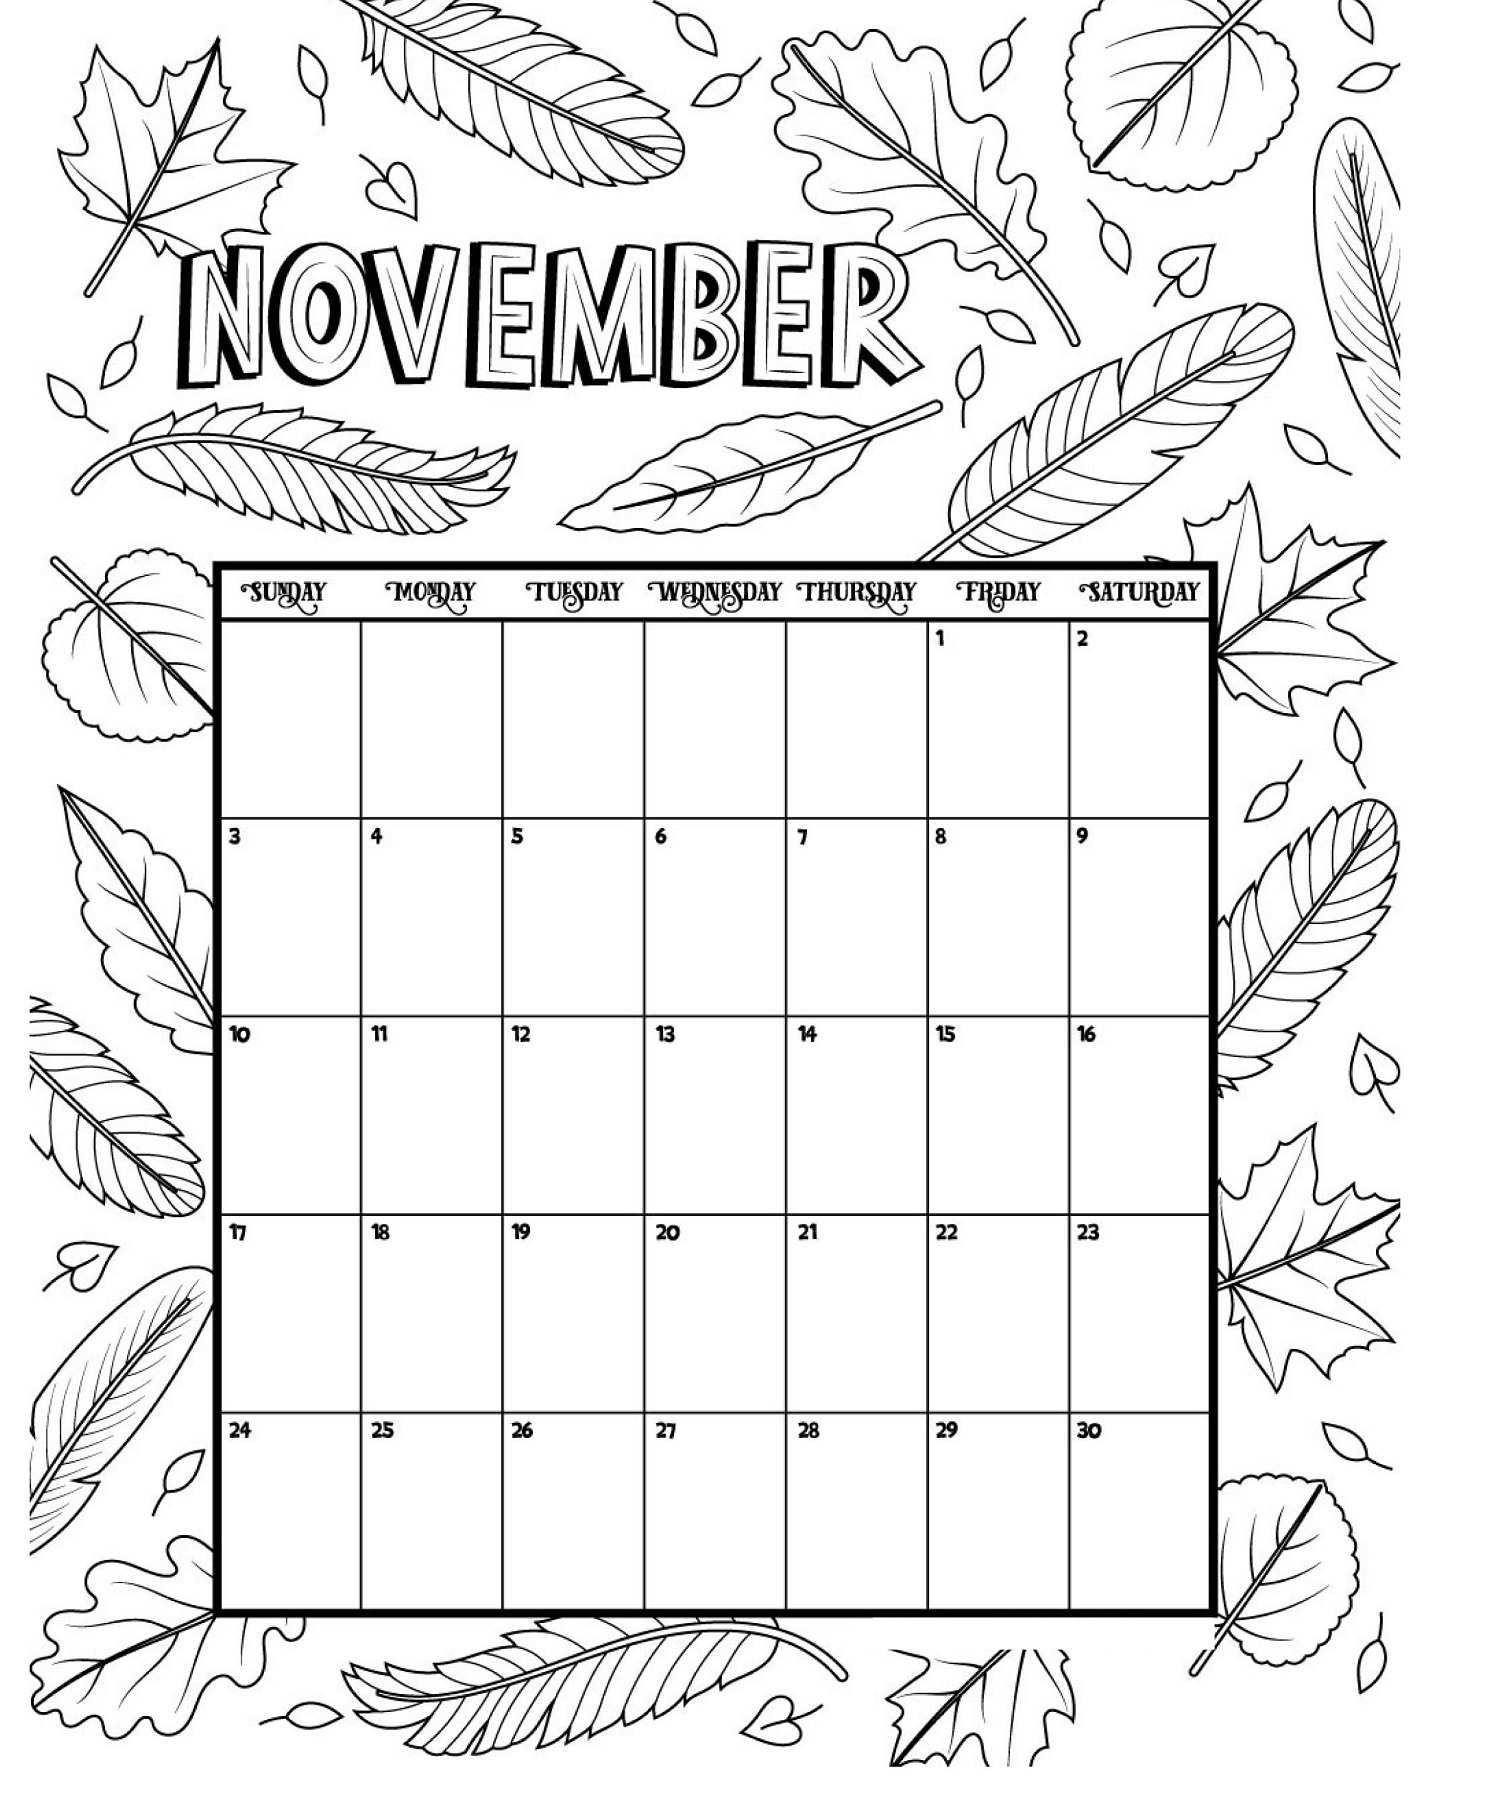 Best November Coloring Pages For Preschoolers Toddlers Print